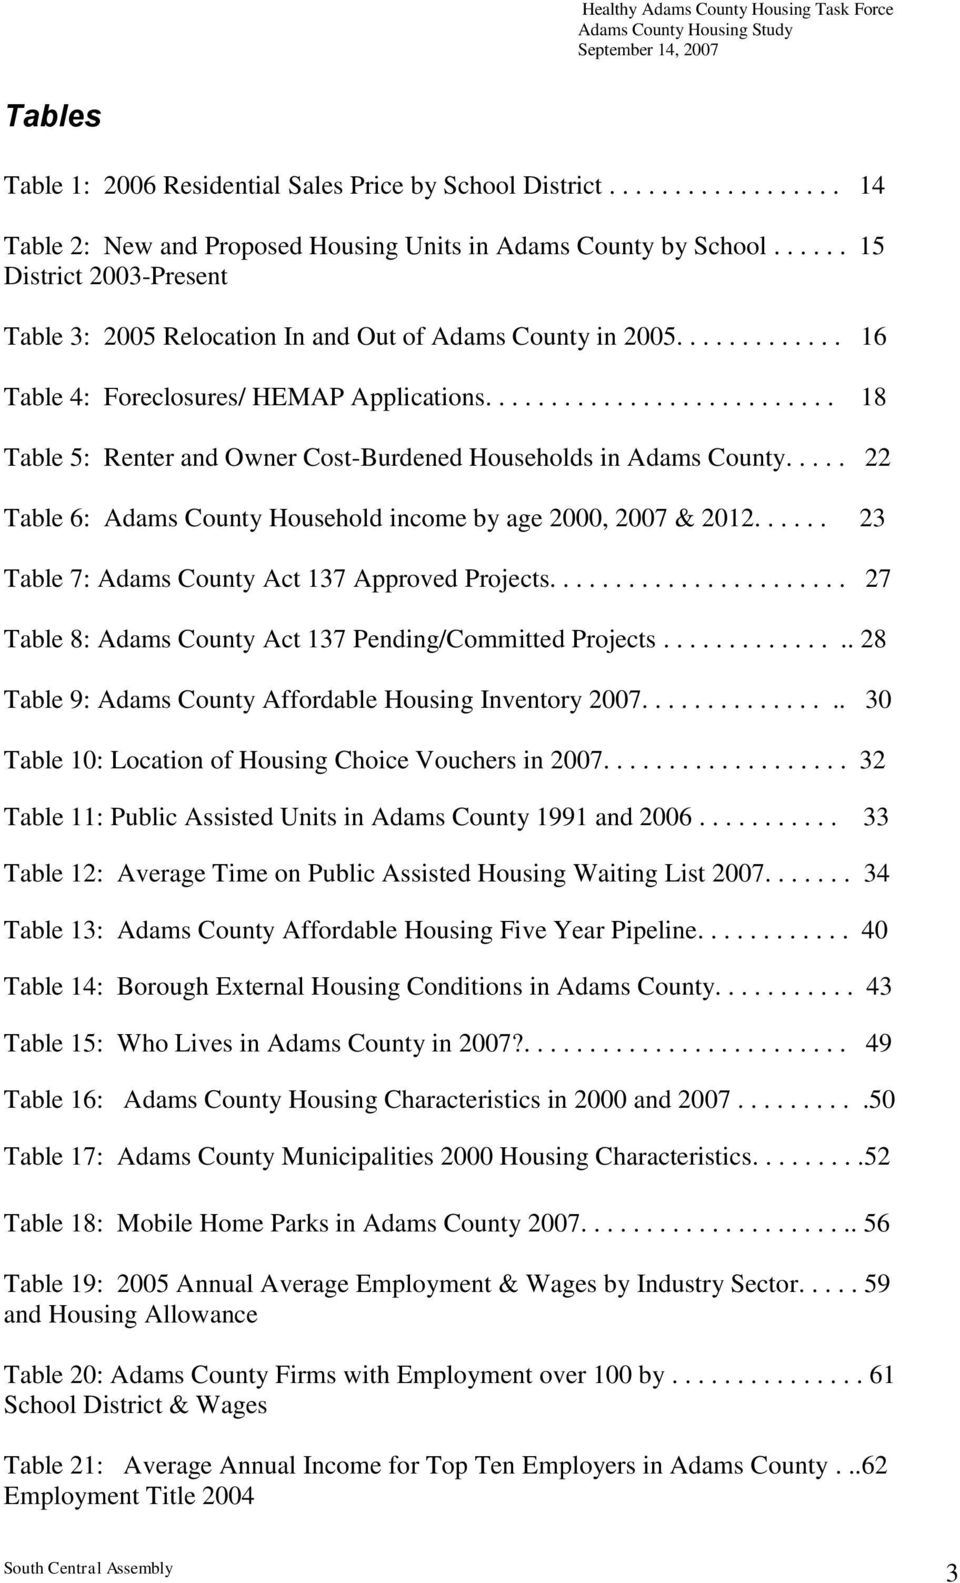 .......................... 18 Table 5: Renter and Owner Cost-Burdened Households in Adams County..... 22 Table 6: Adams County Household income by age 2000, 2007 & 2012.